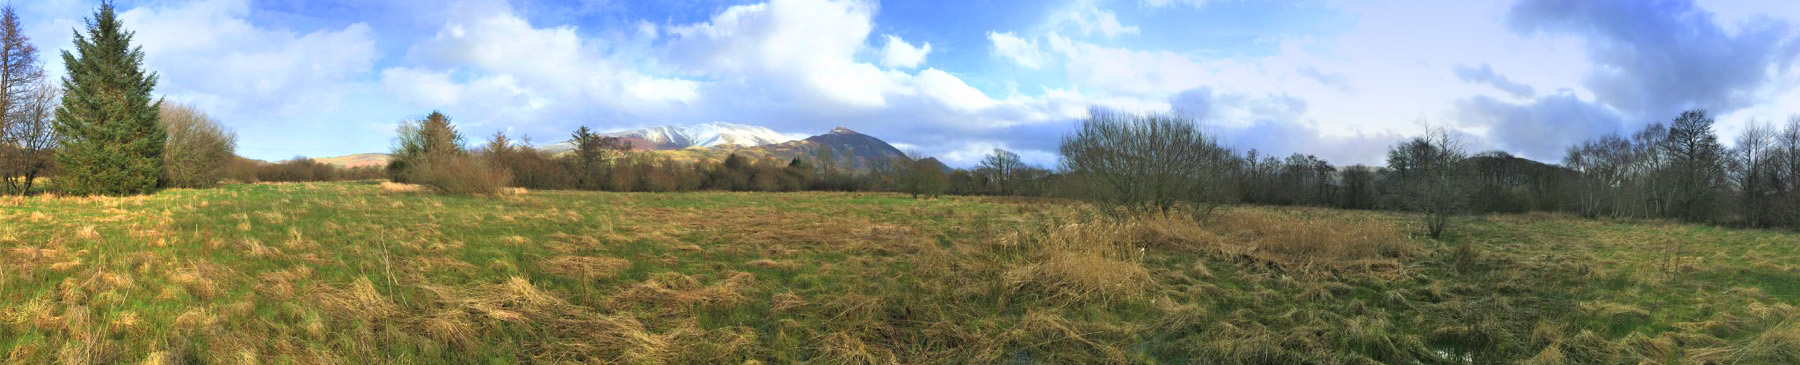 panoramic view of Skiddaw and Ullock Pike with 13 Acre field in foreground. A wide expanse of wet pastureland that is to be planted with thousands of trees. A few mature trees around the perimeter of the field